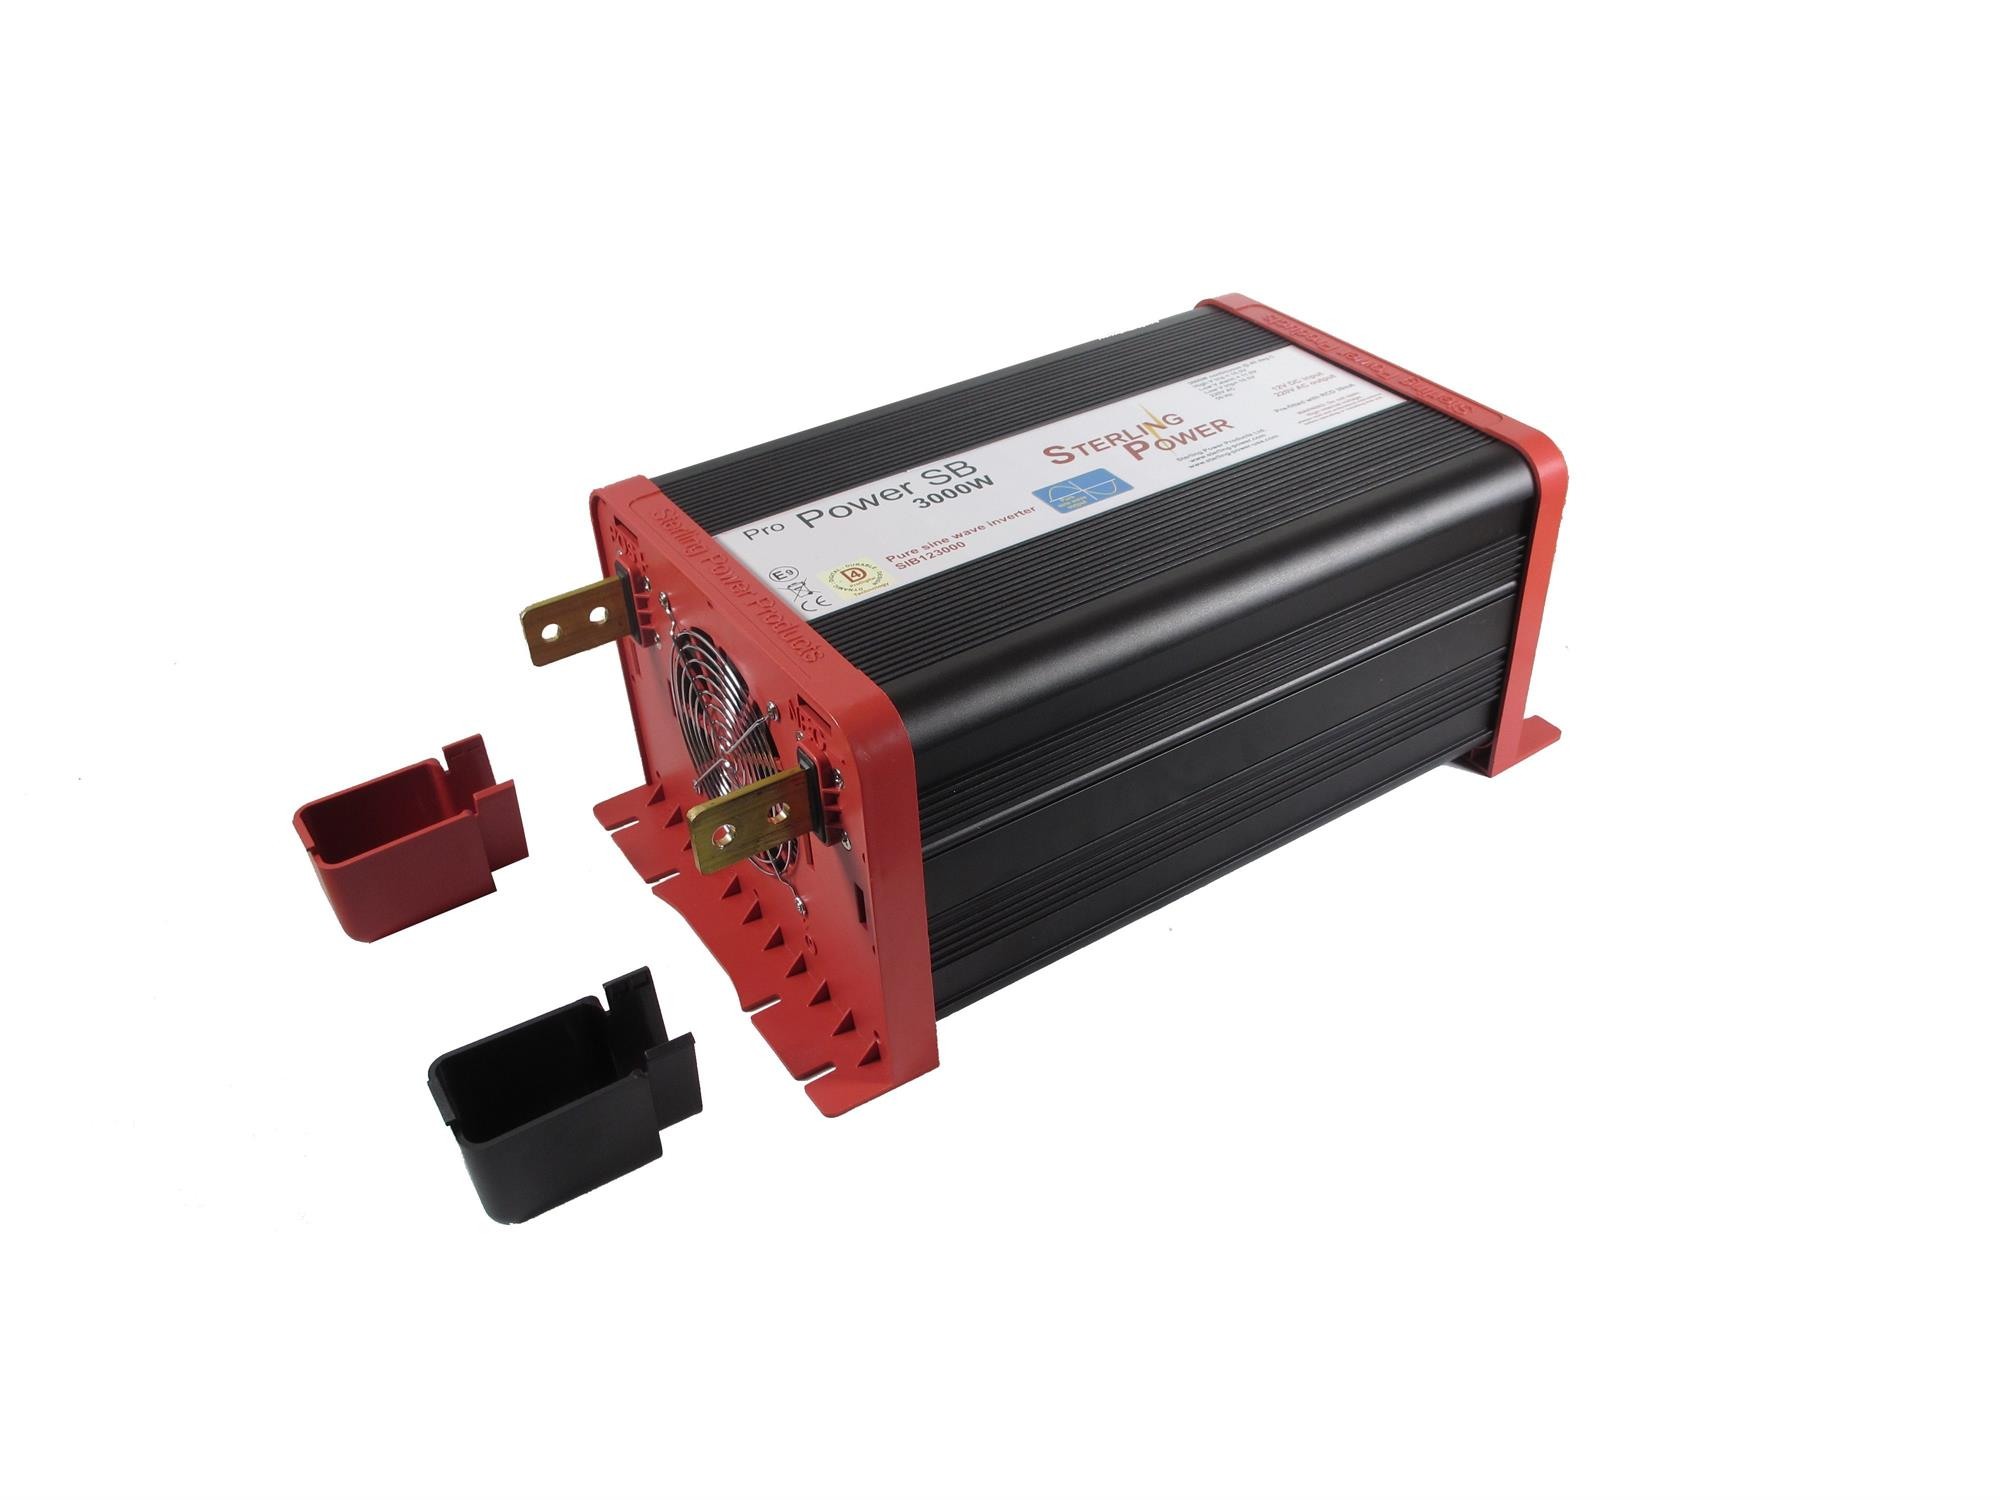 Sterling Pro Power SB 4000W 12v Inverter